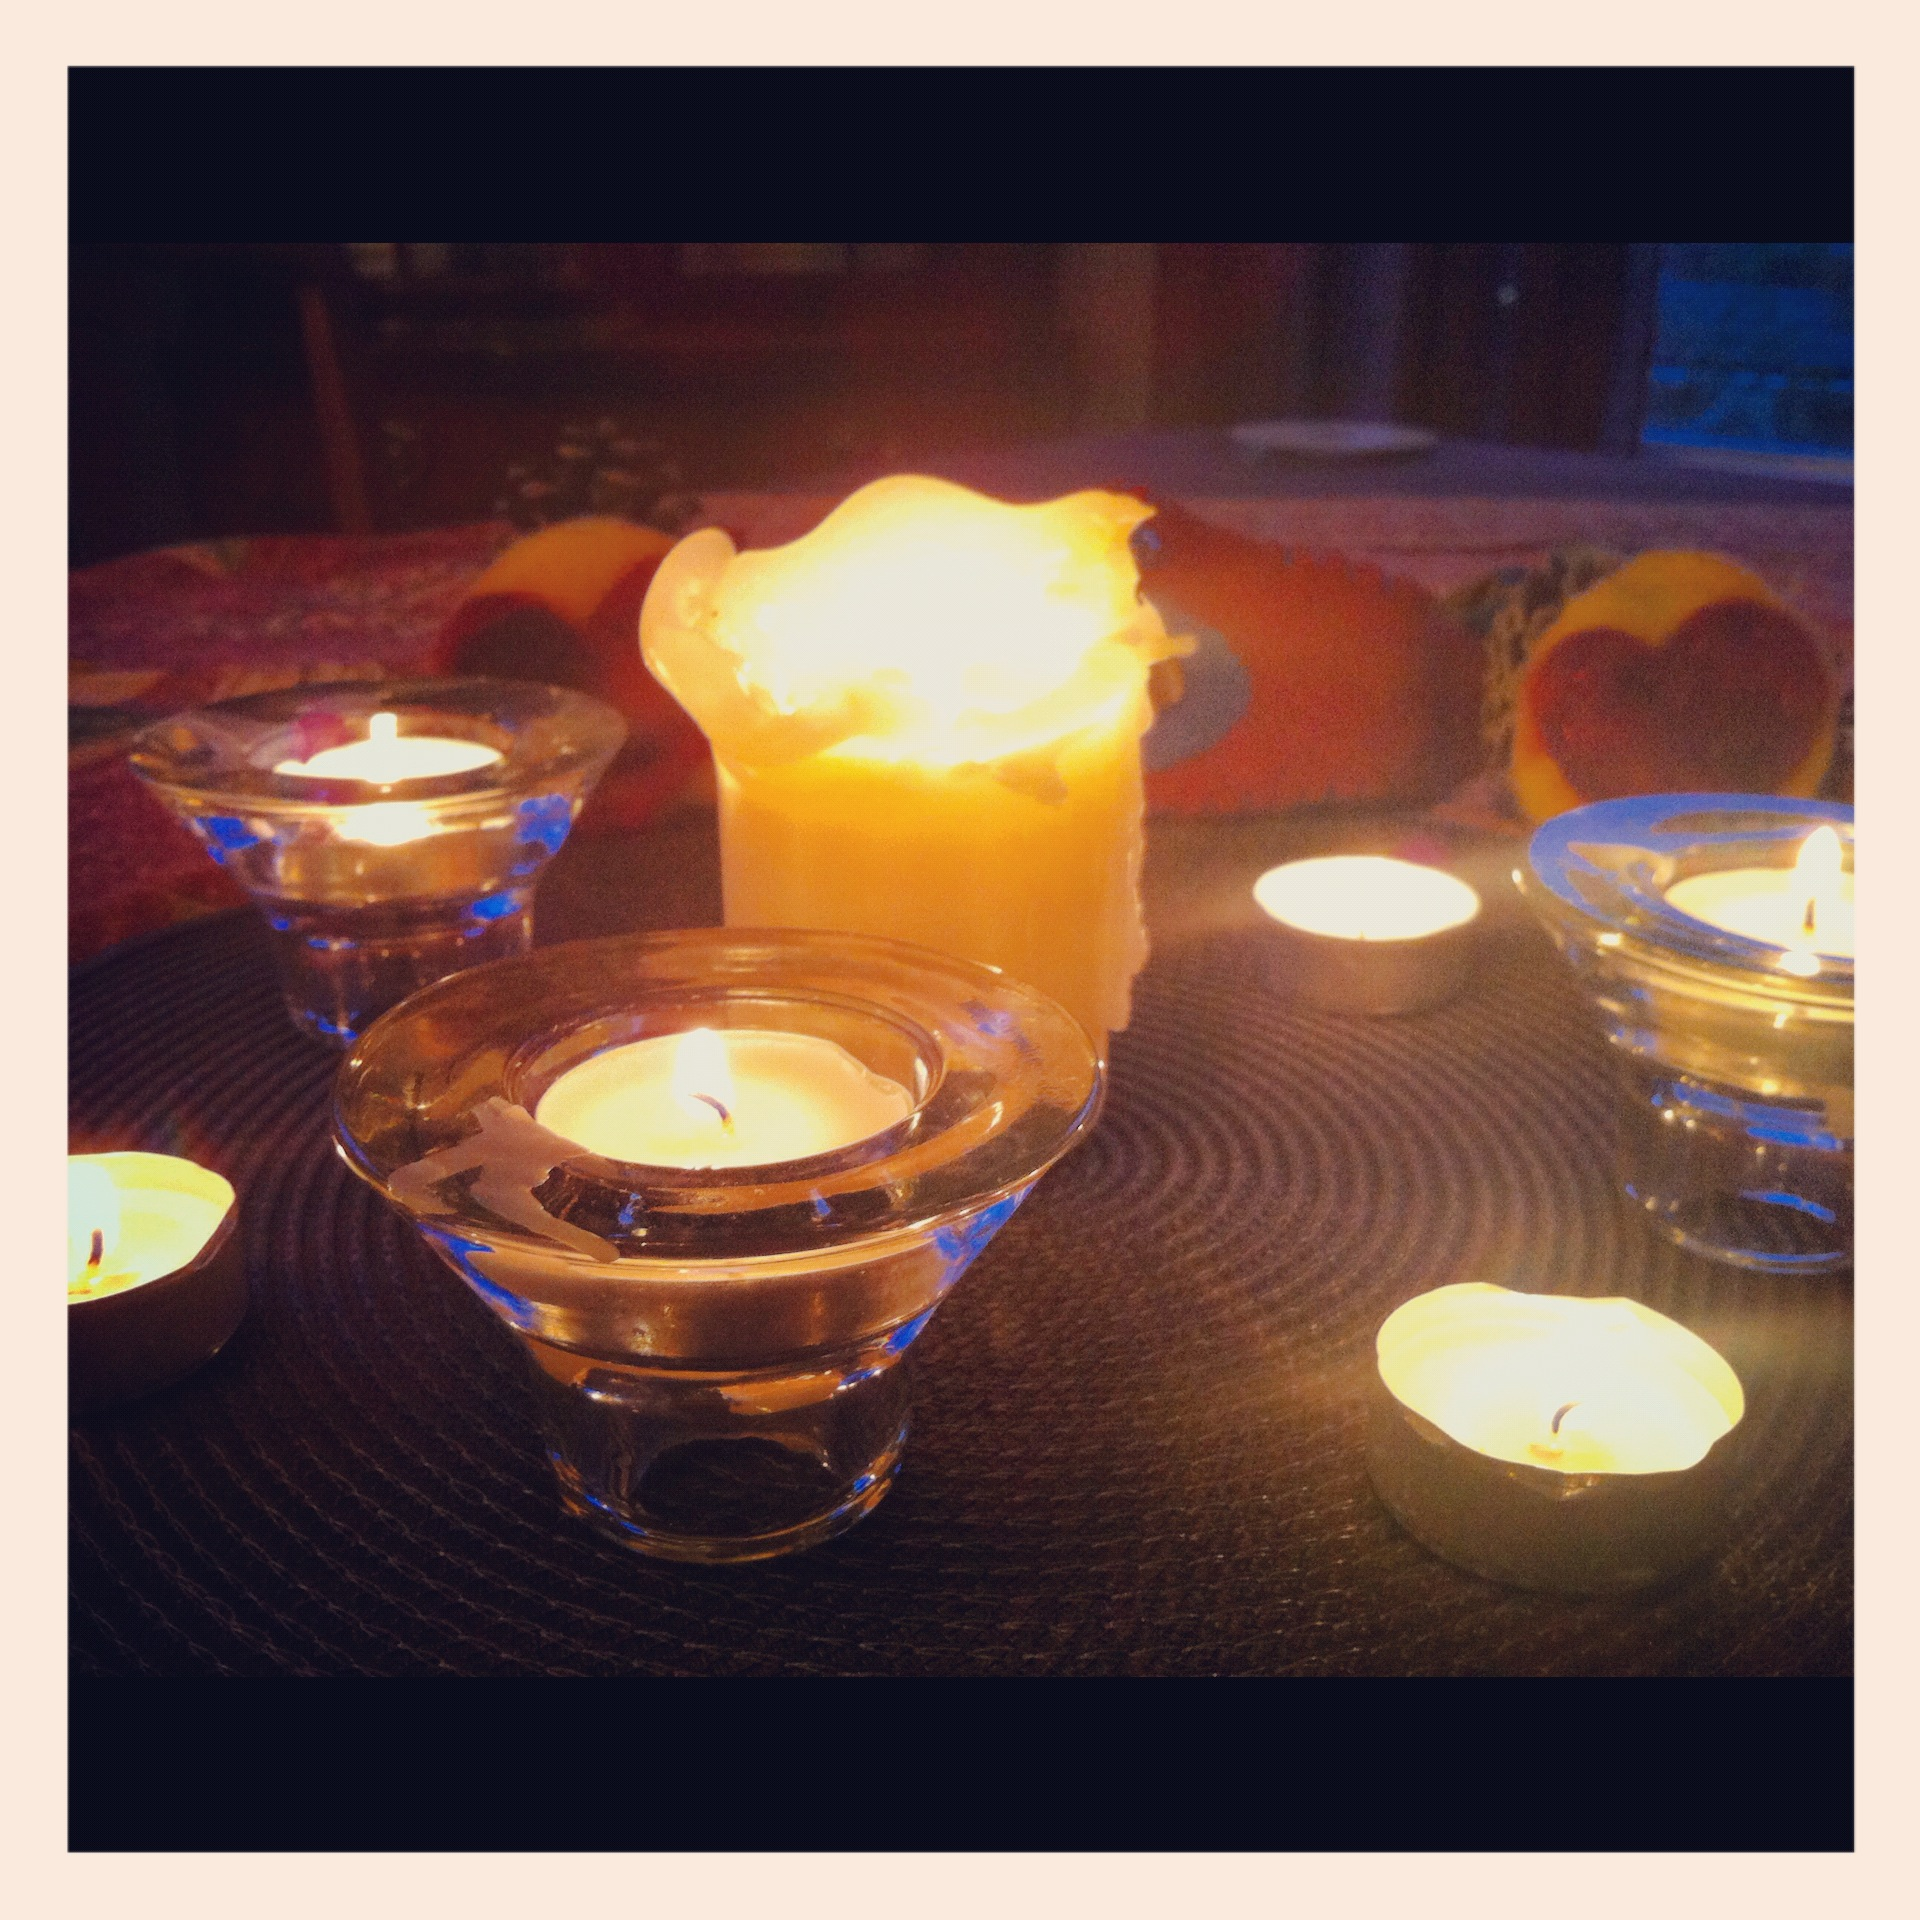 candles at meal time